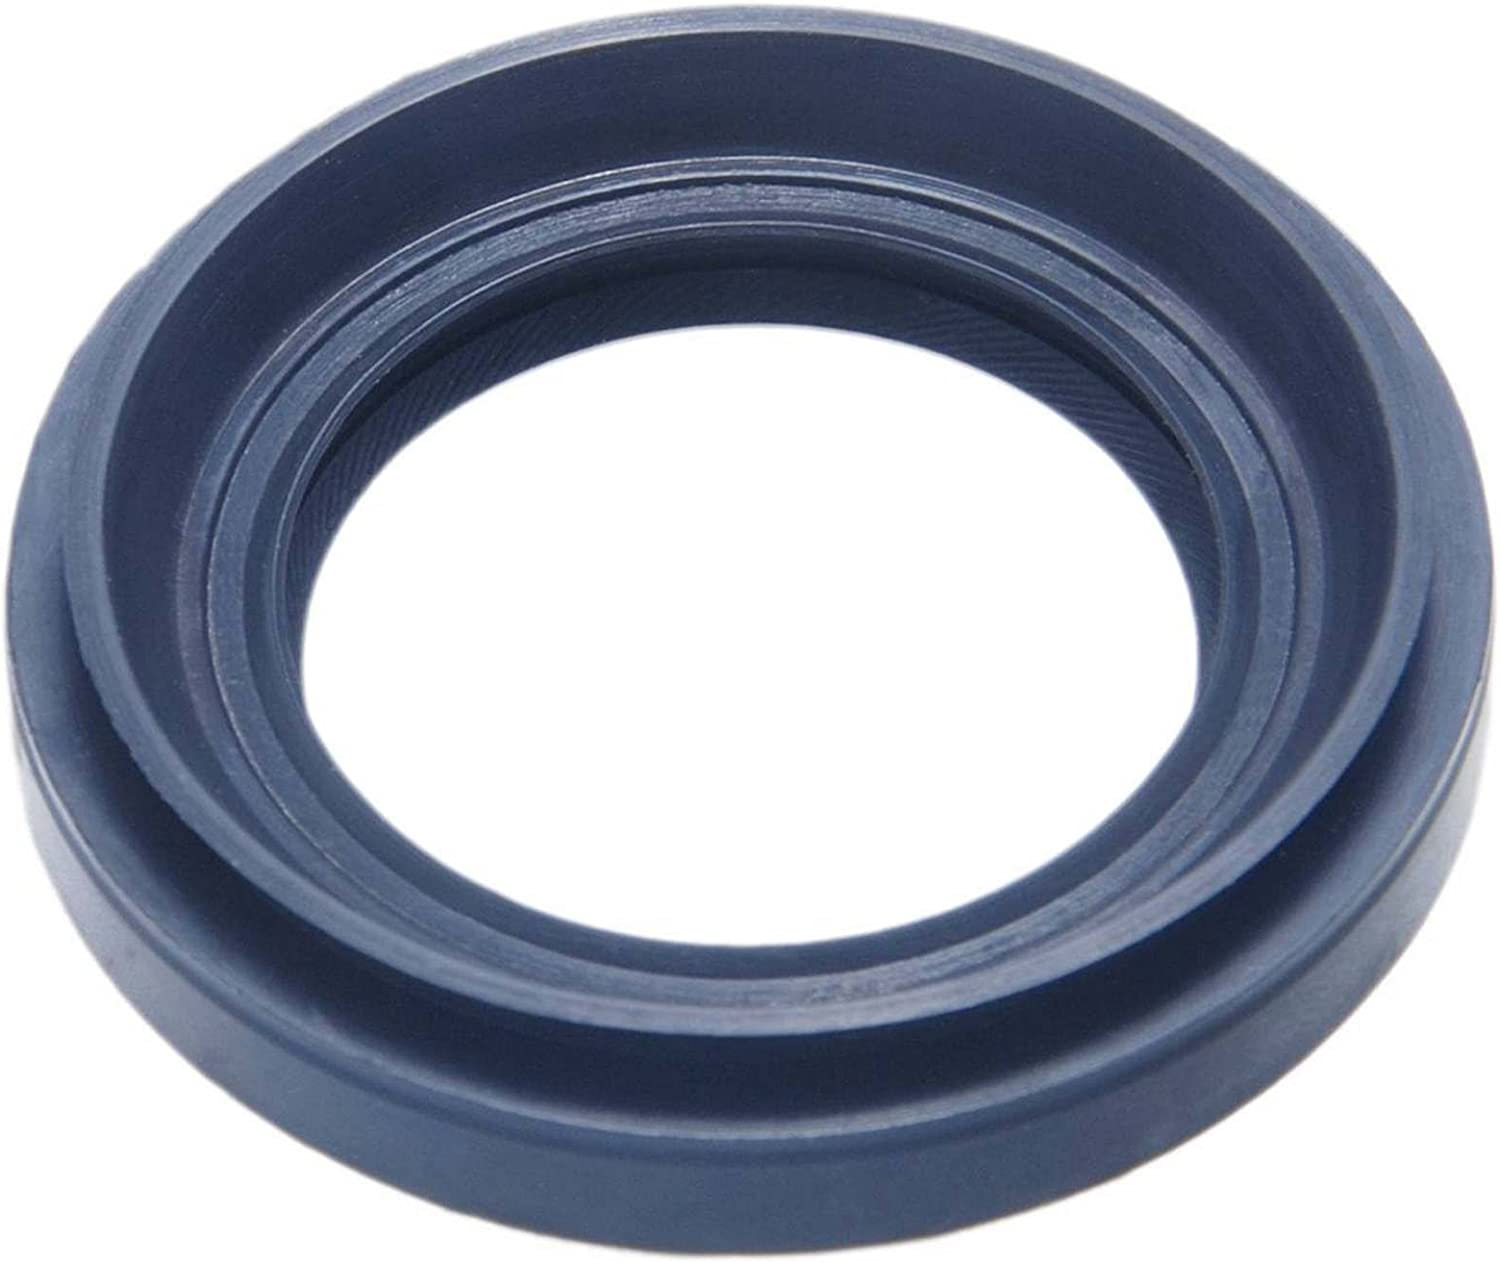 OIL SEAL AXLE CASE 35X56X8X11.4 Febest 95HBY-35560811L